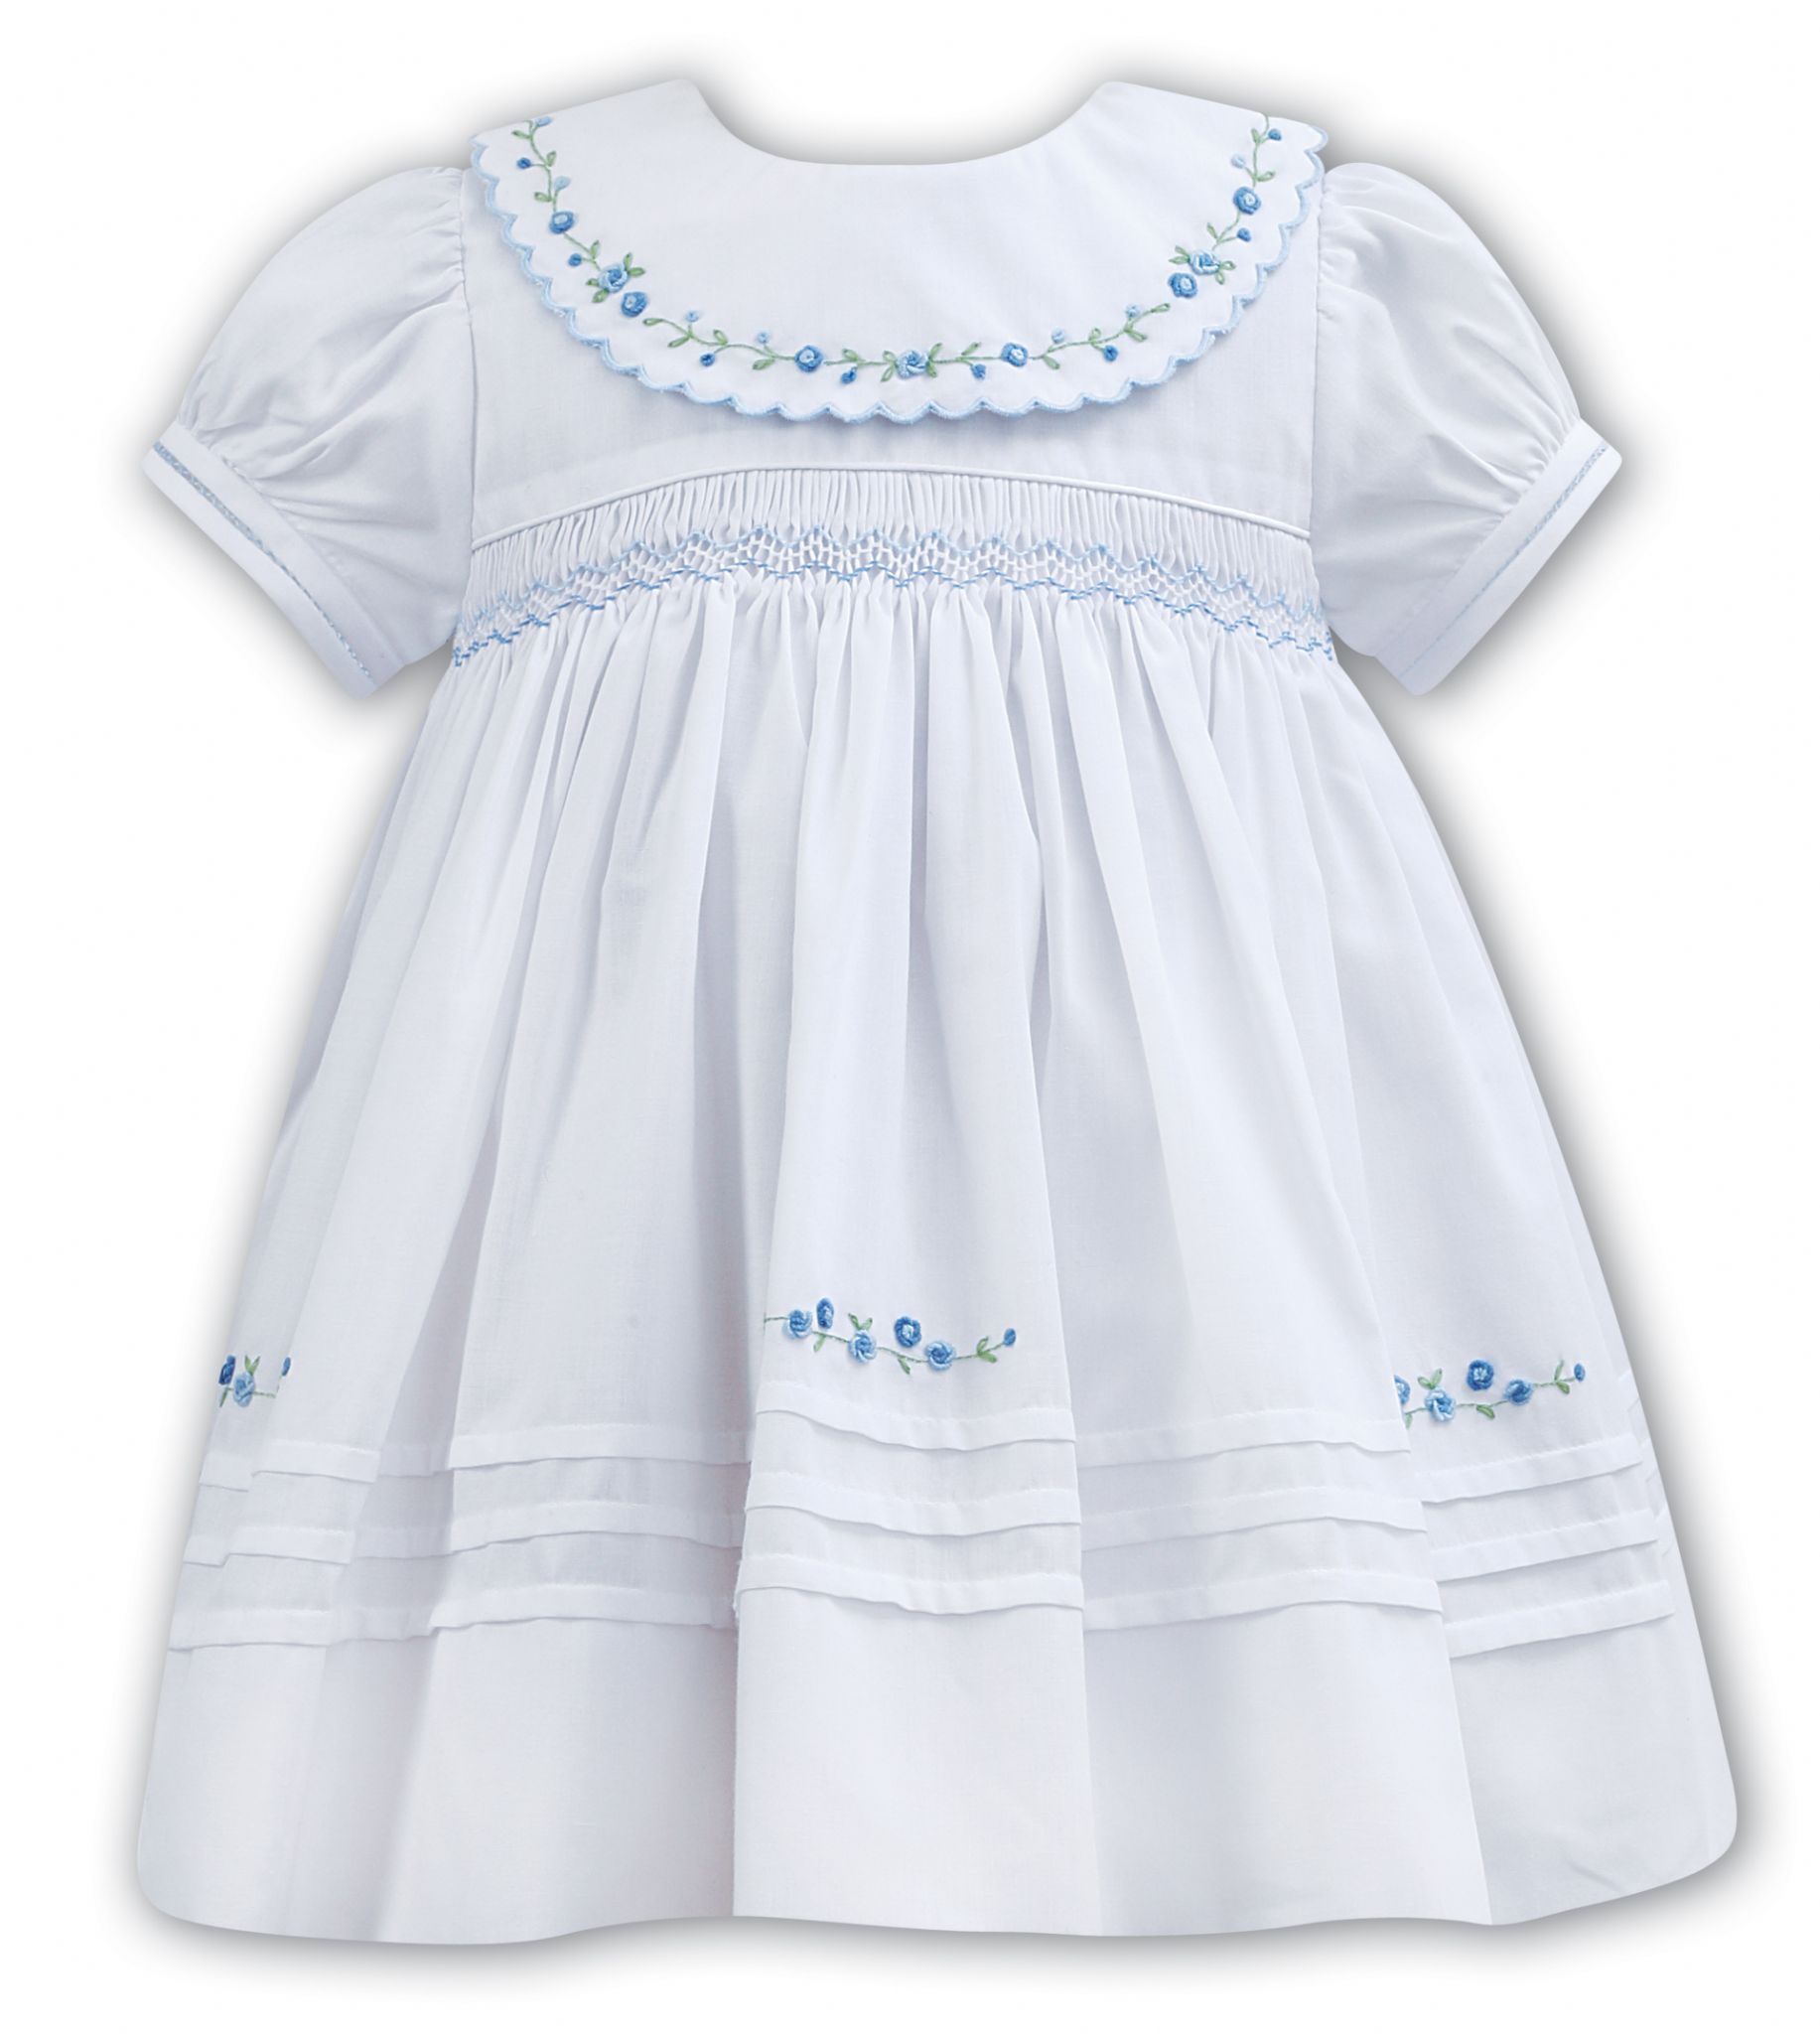 49499306e Sarah Louise White and Blue Flower Dress